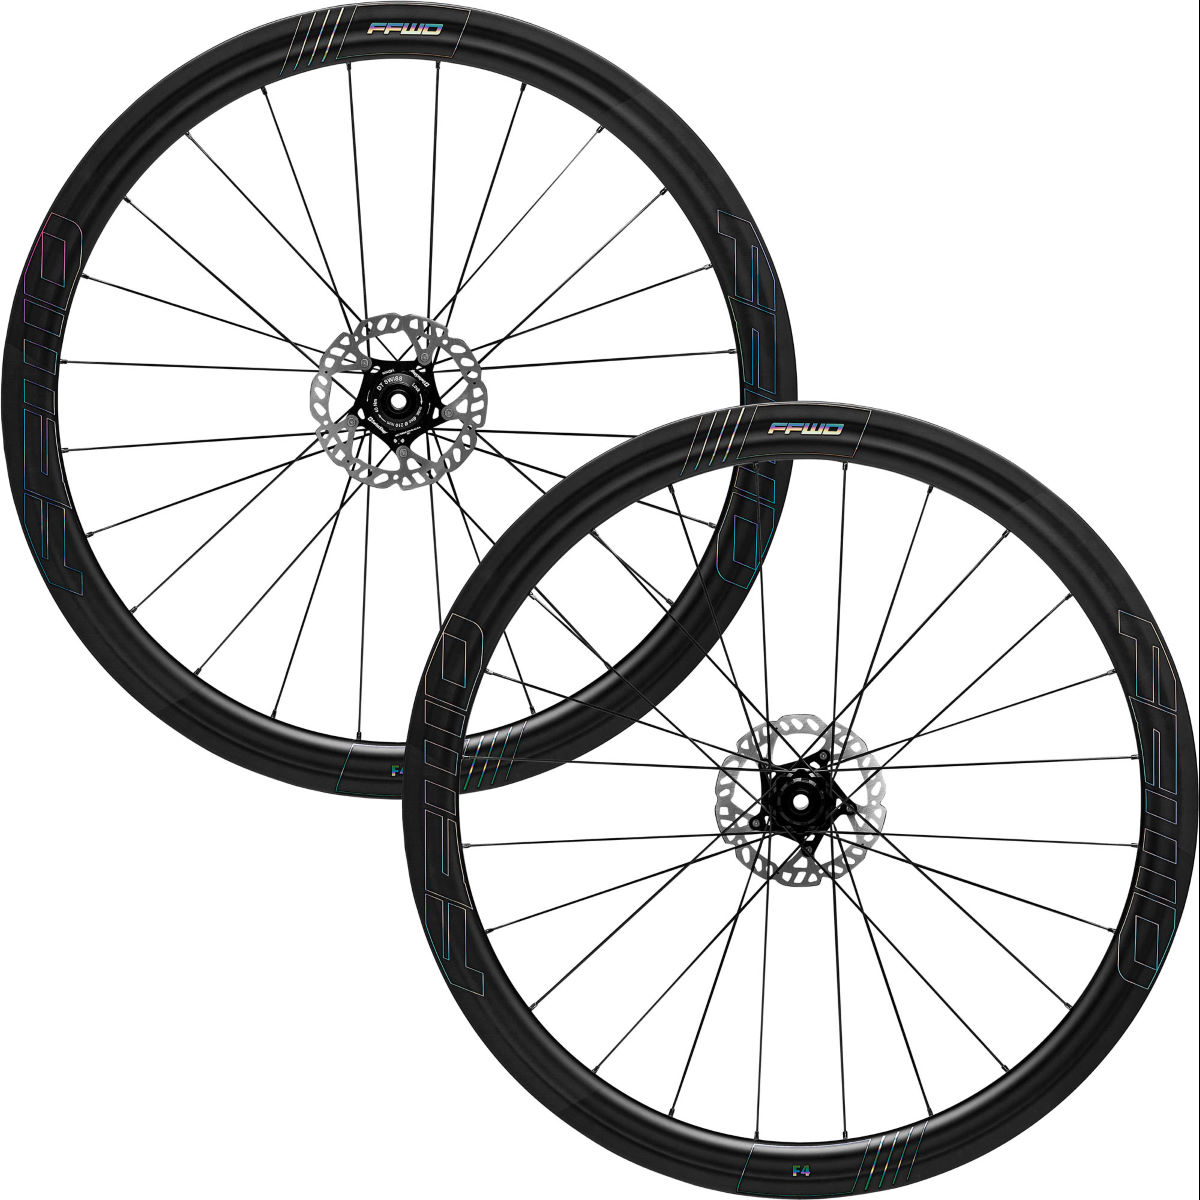 Fast Forward Fast Forward F4D Oil DT350 Carbon Disc Road Wheelset   Wheel Sets